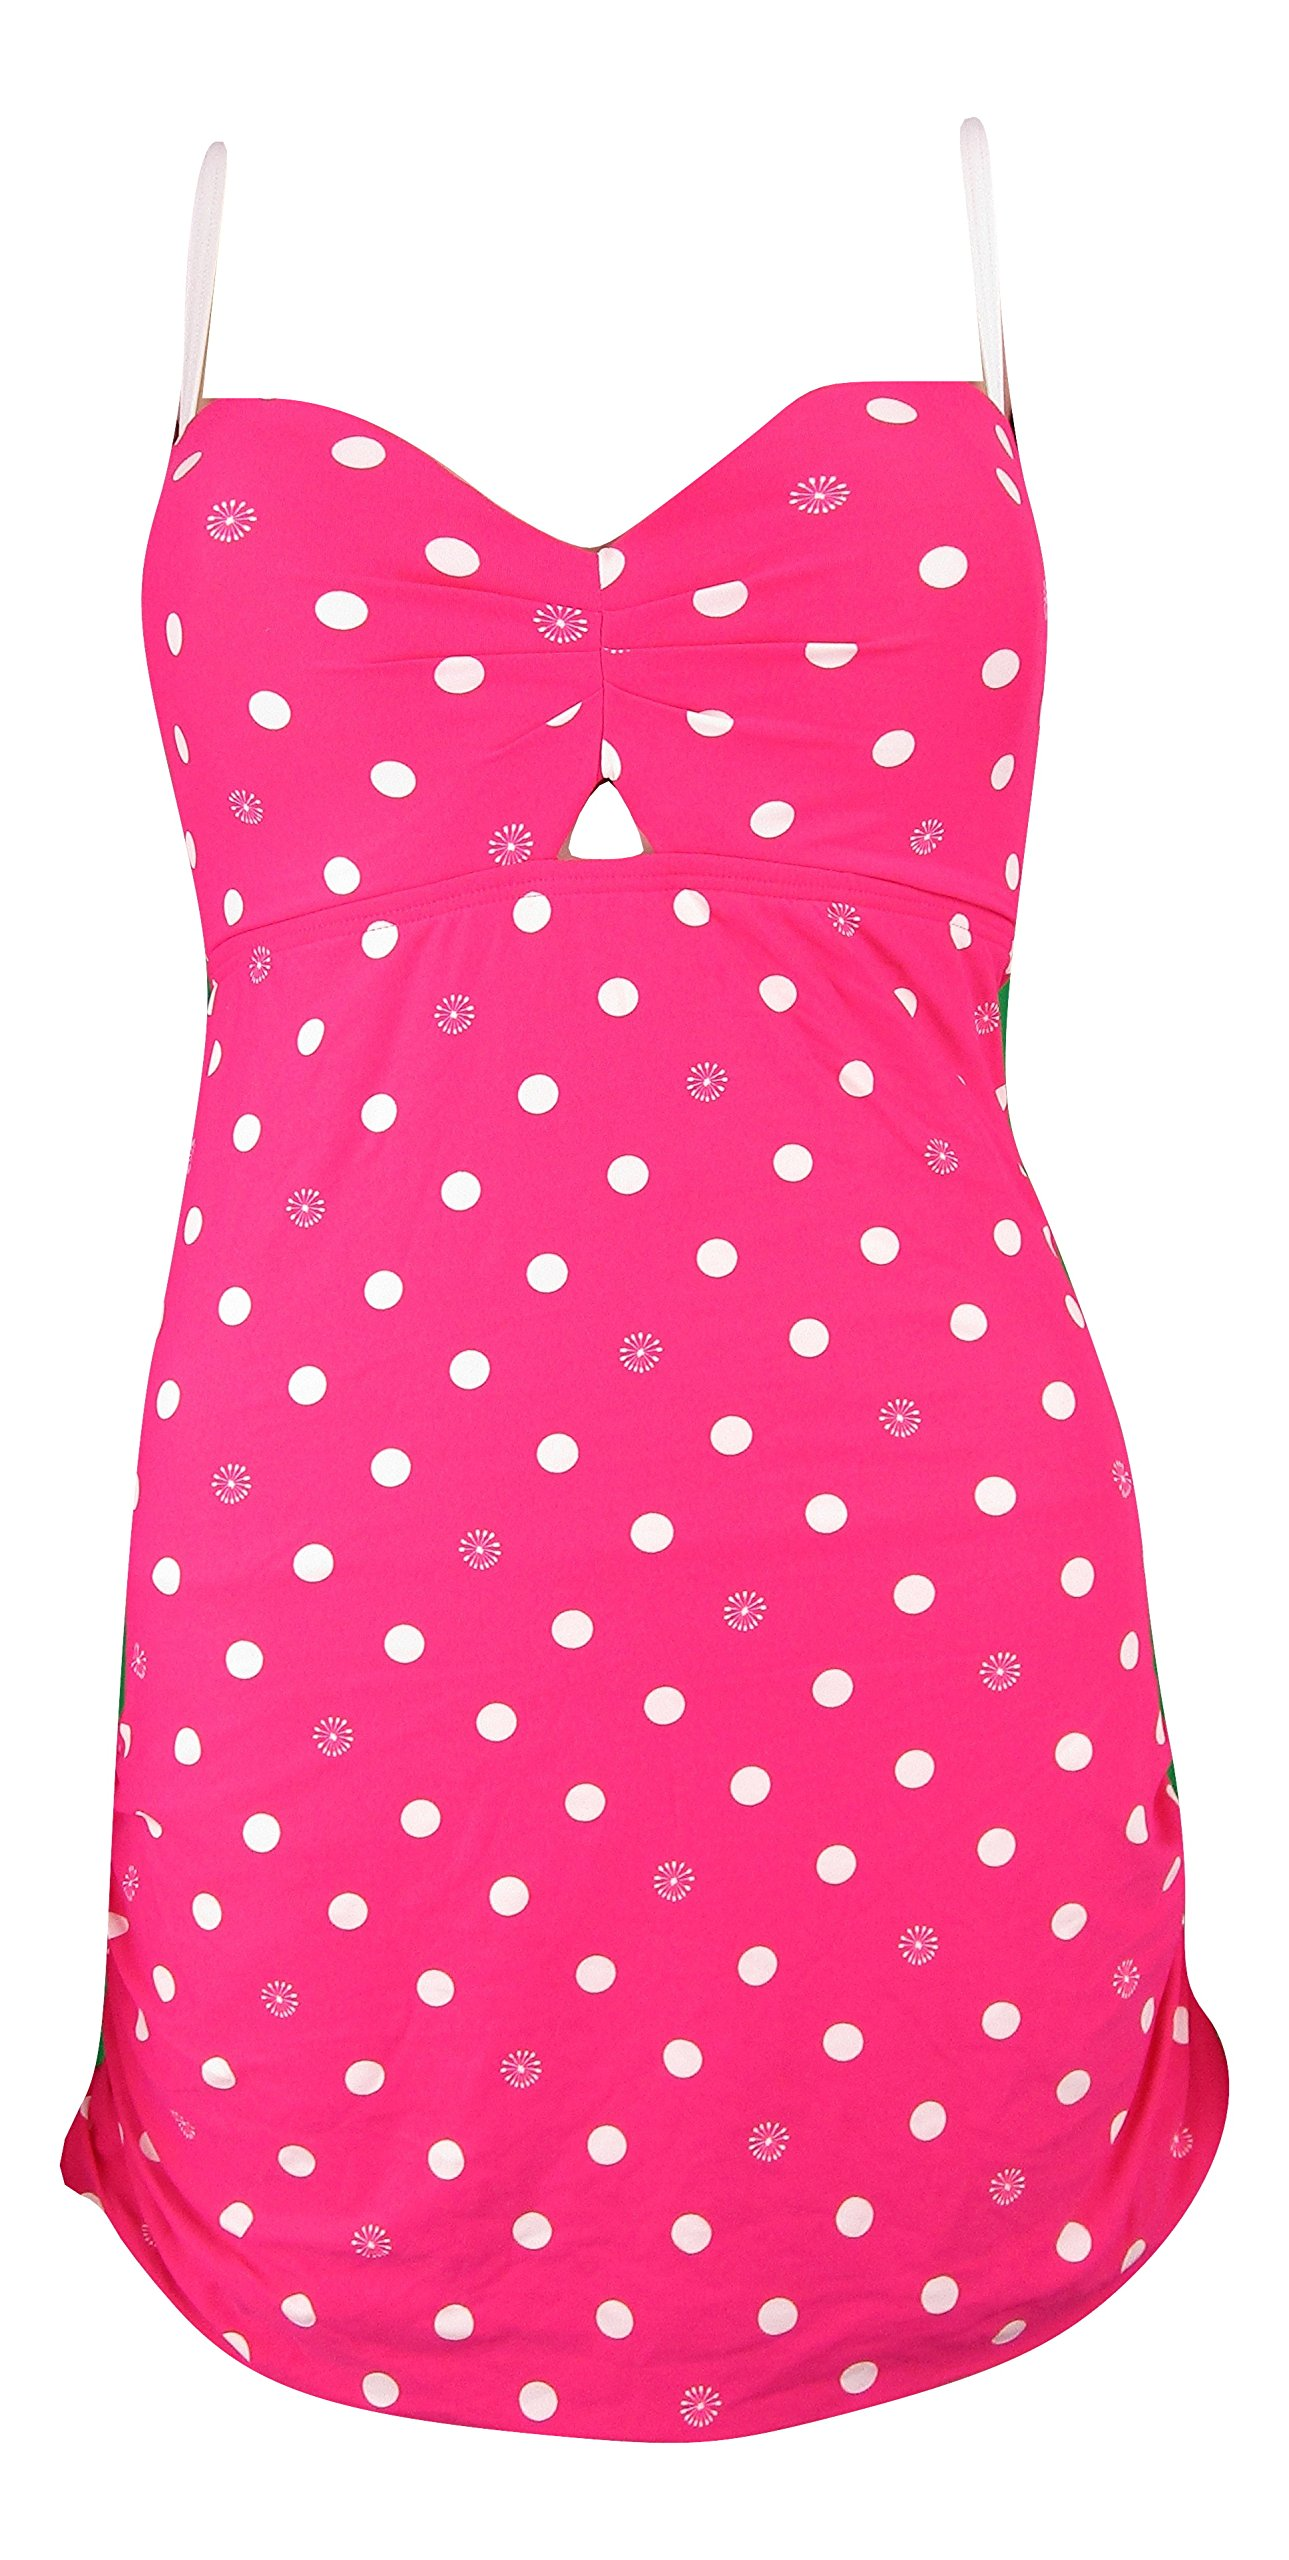 Coco Rave Polka Dot Push Up Bra Underwire Swimwear Swim Dress One Piece Ruffle Skirted 36C L, Pink by COCO RAVE